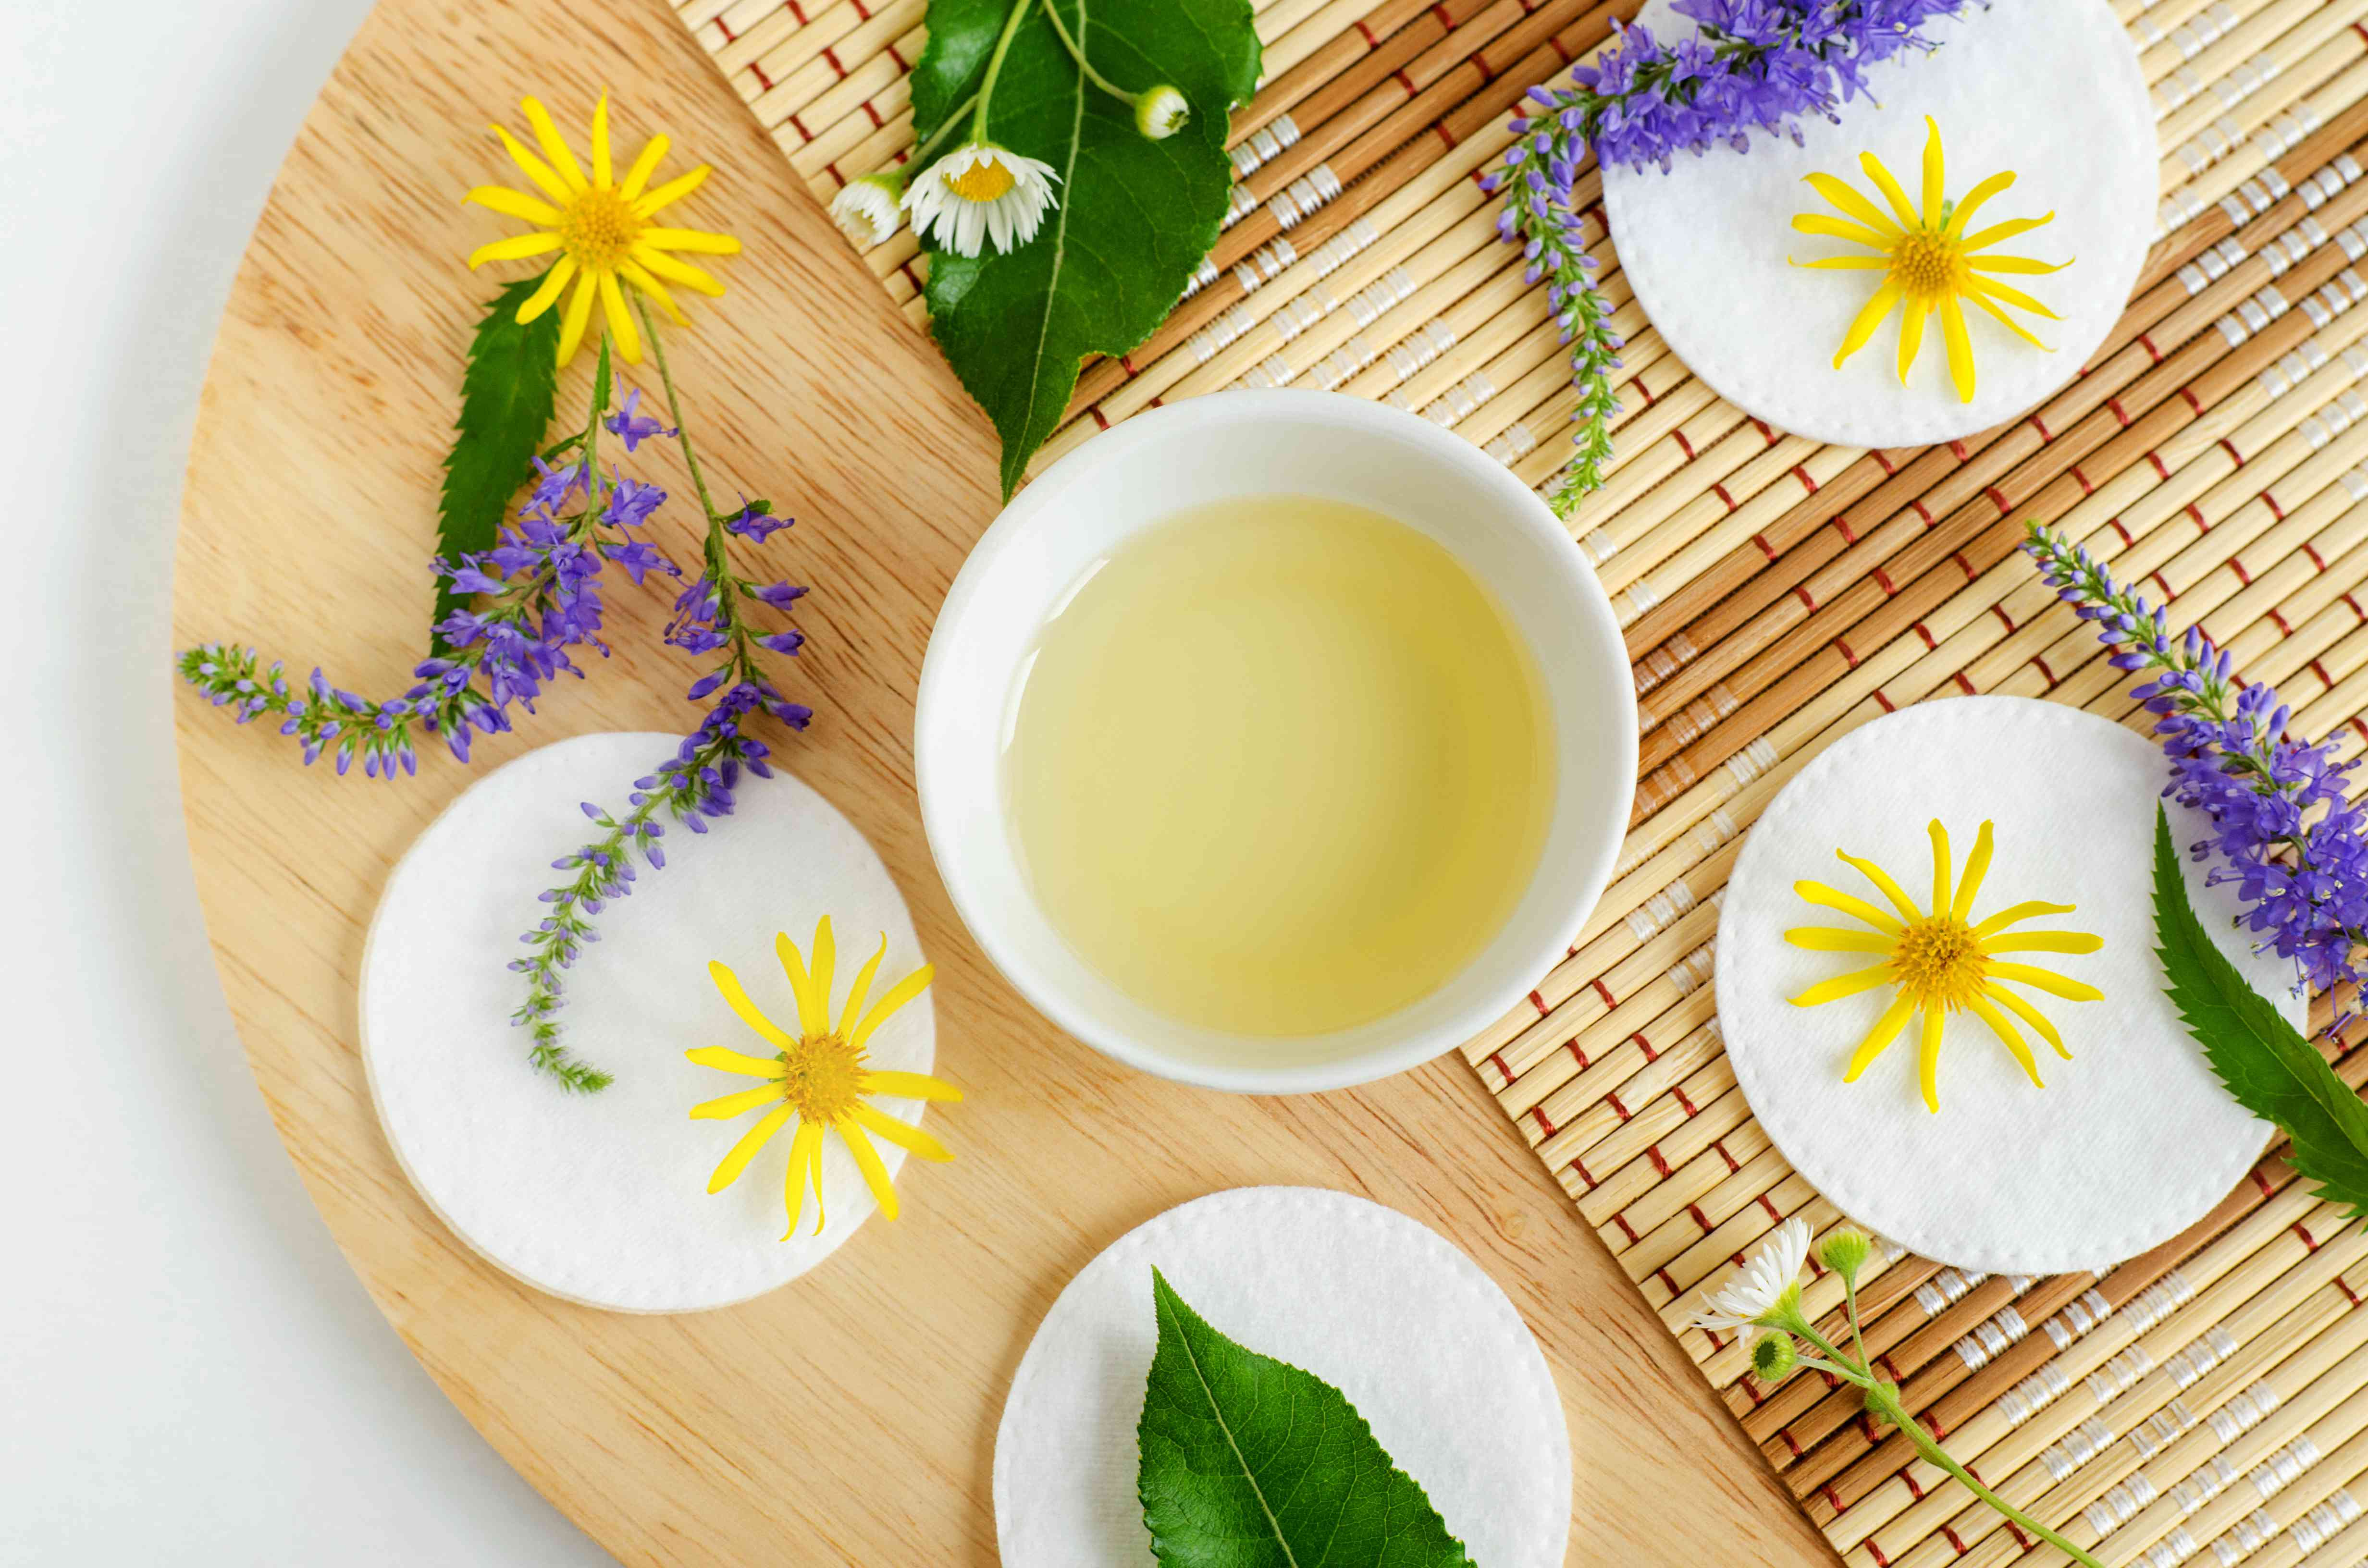 Small white bowl with cosmetic (massage, cleansing) aroma oil, cotton pads and wild flowers. Natural skin care, homemade spa and beauty treatment recipe. Top view, copy space.